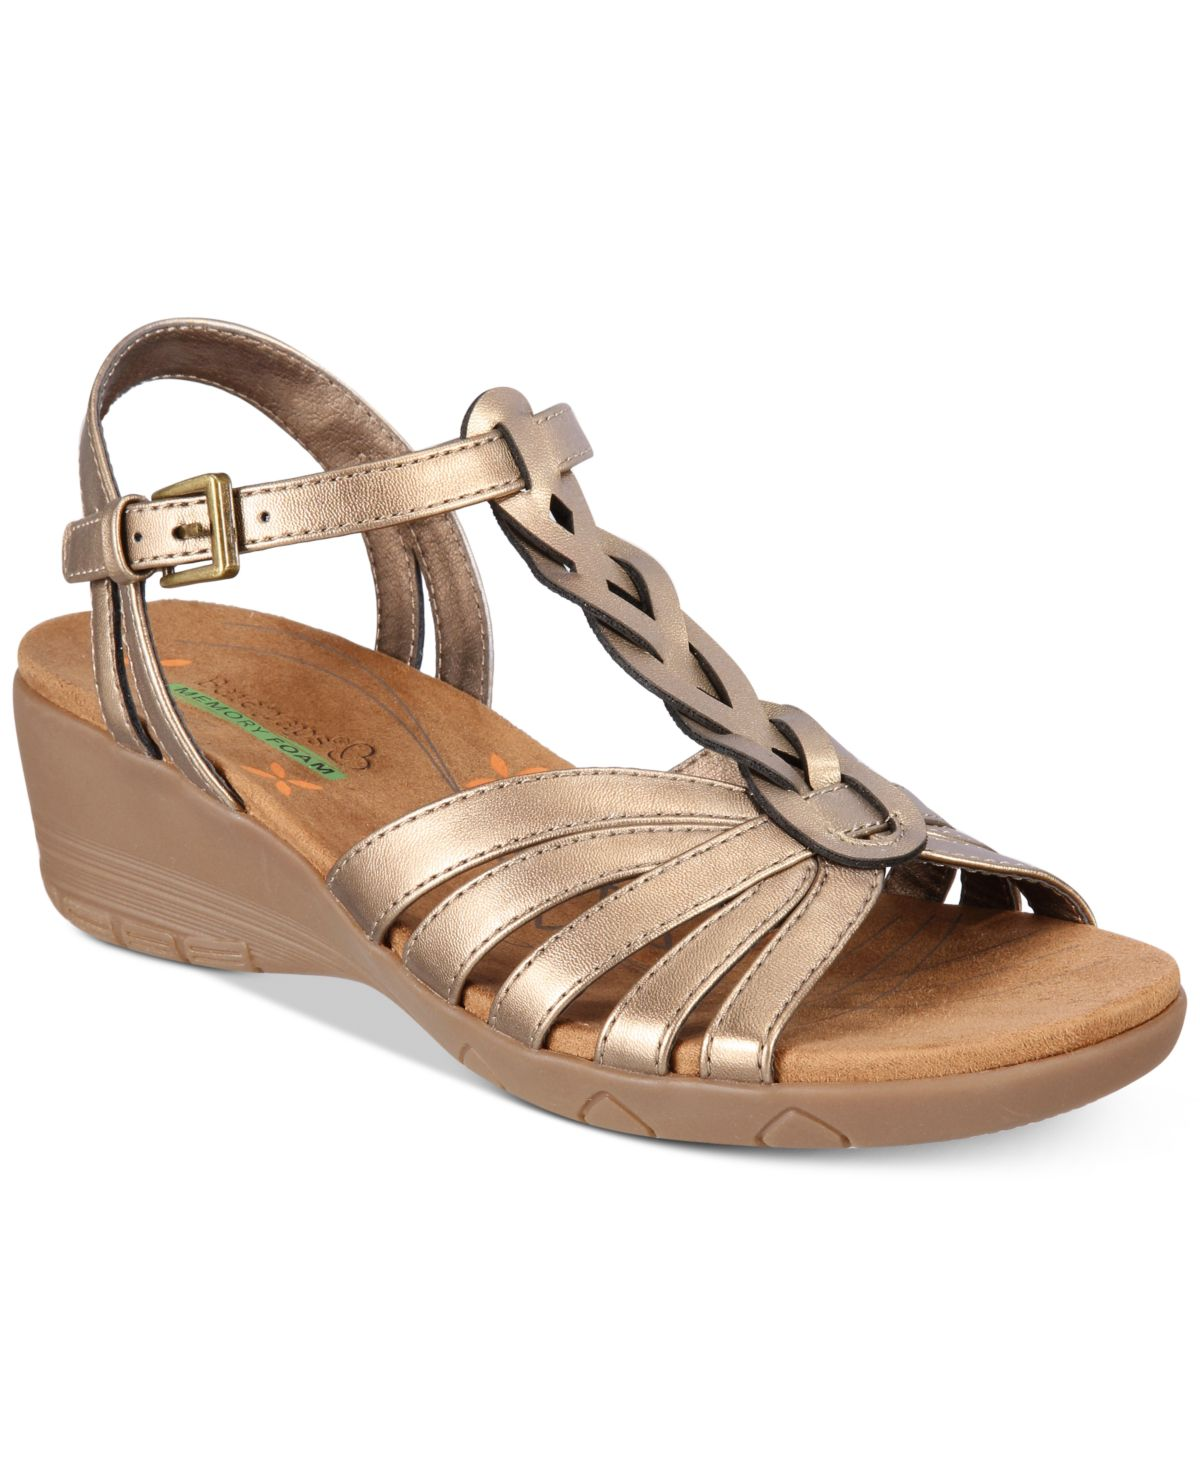 Bare Traps Honora Wedge Sandals